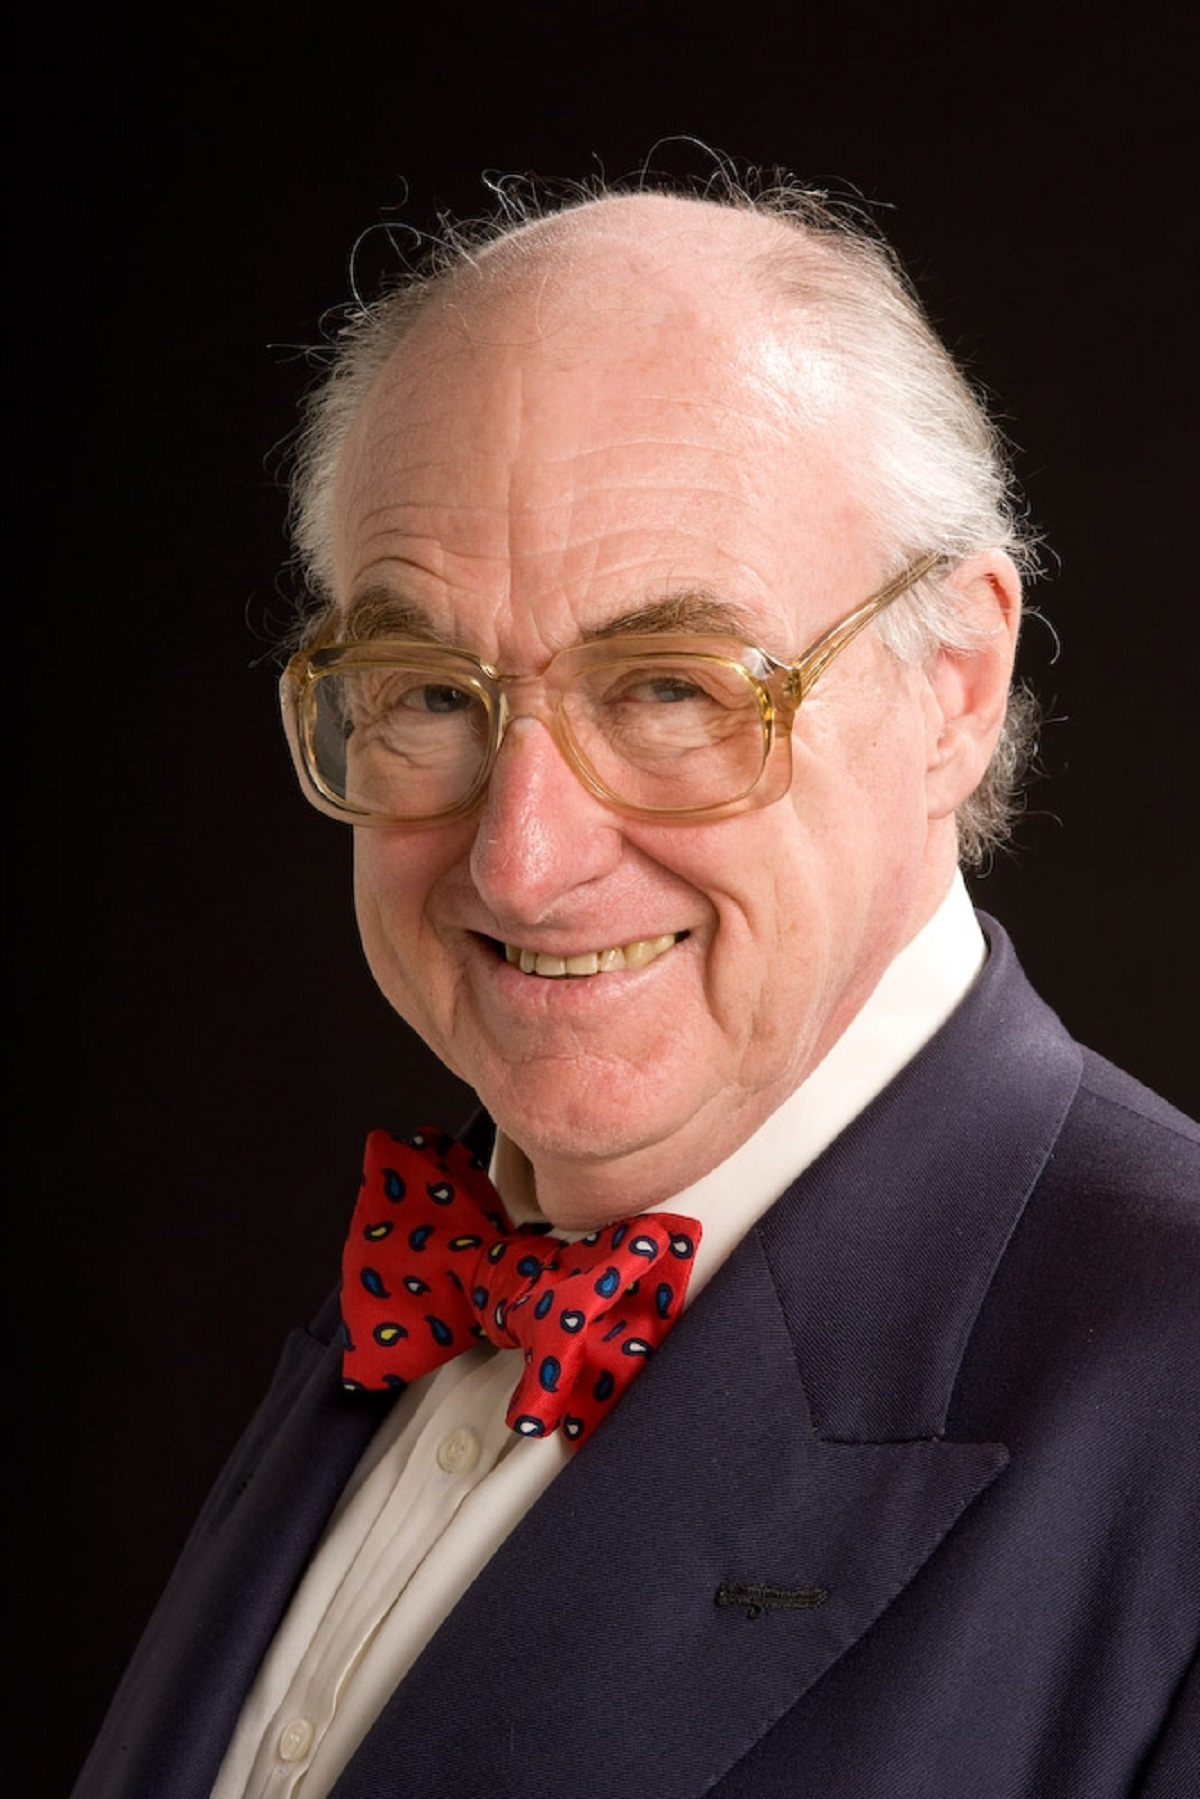 Henry Blofeld, who is appearing at Layer Marney Tower next month